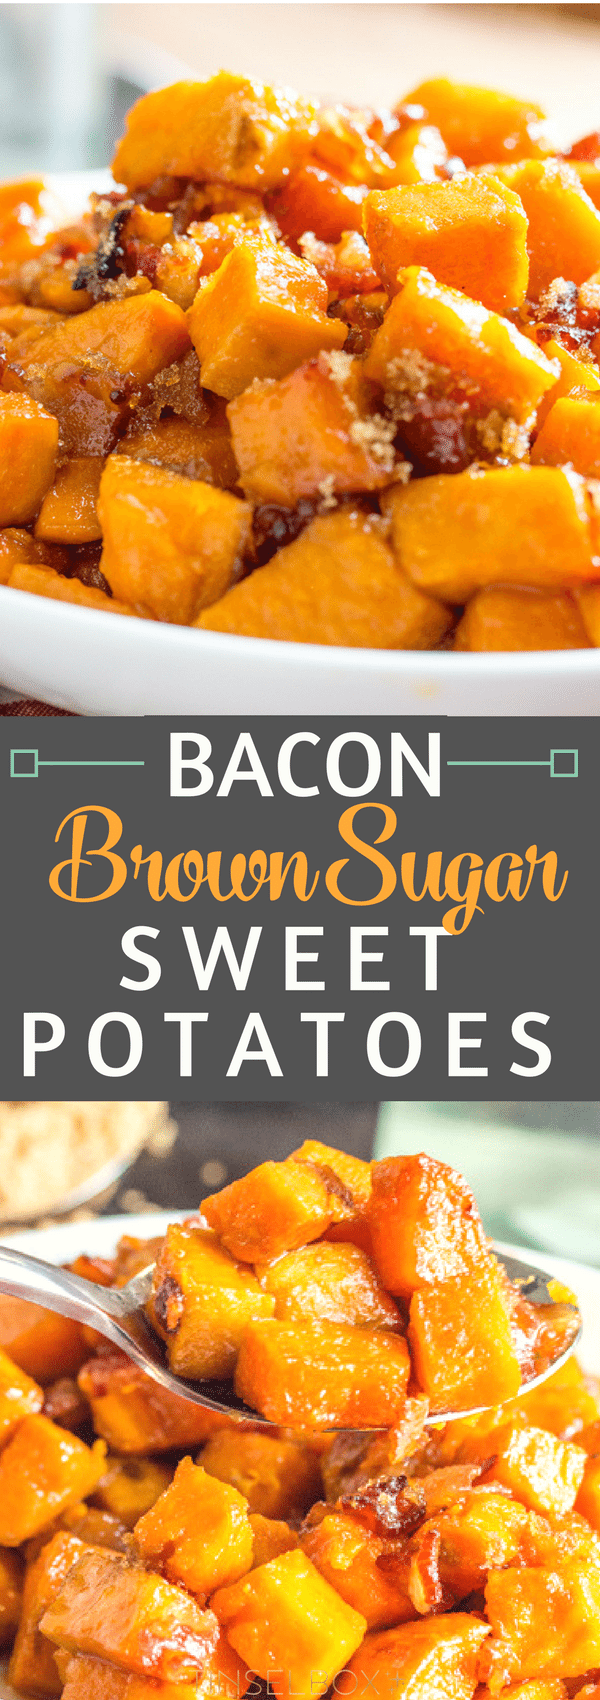 Sweet and tender these Brown Sugar Bacon Roasted Sweet Potatoes are the perfect side dish to your Easter, Thanksgiving or family meal! Quick, easy and addicting. The sweet and salty combine well in these and they will be gone in an instant. #brownsugar #sweetpotatoes #bacon #easyrecipes #easterfood #thanksgivingfood